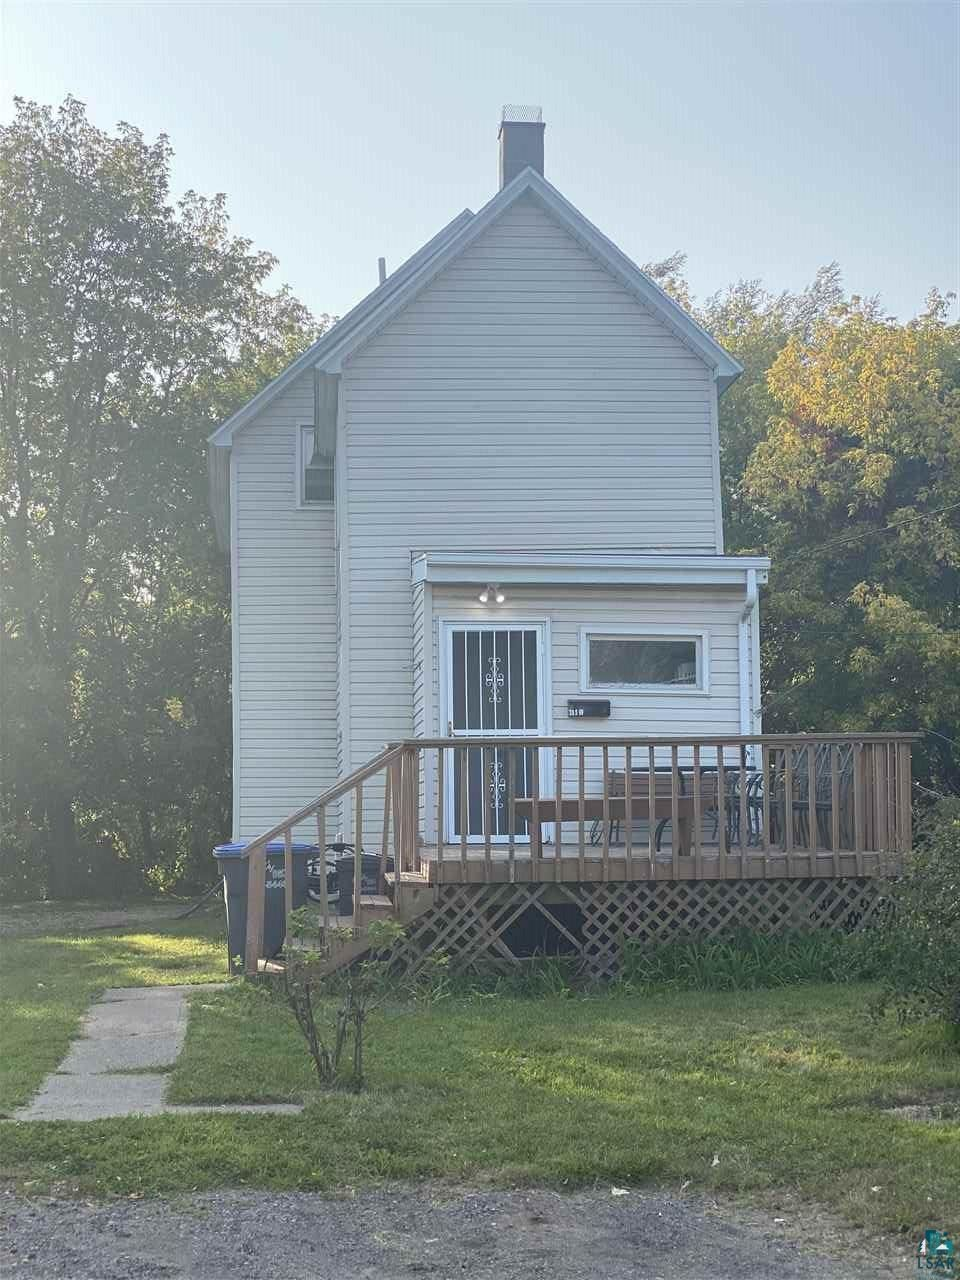 20 S 69th Ave W, Duluth, MN 55807 - MLS#: 6093216